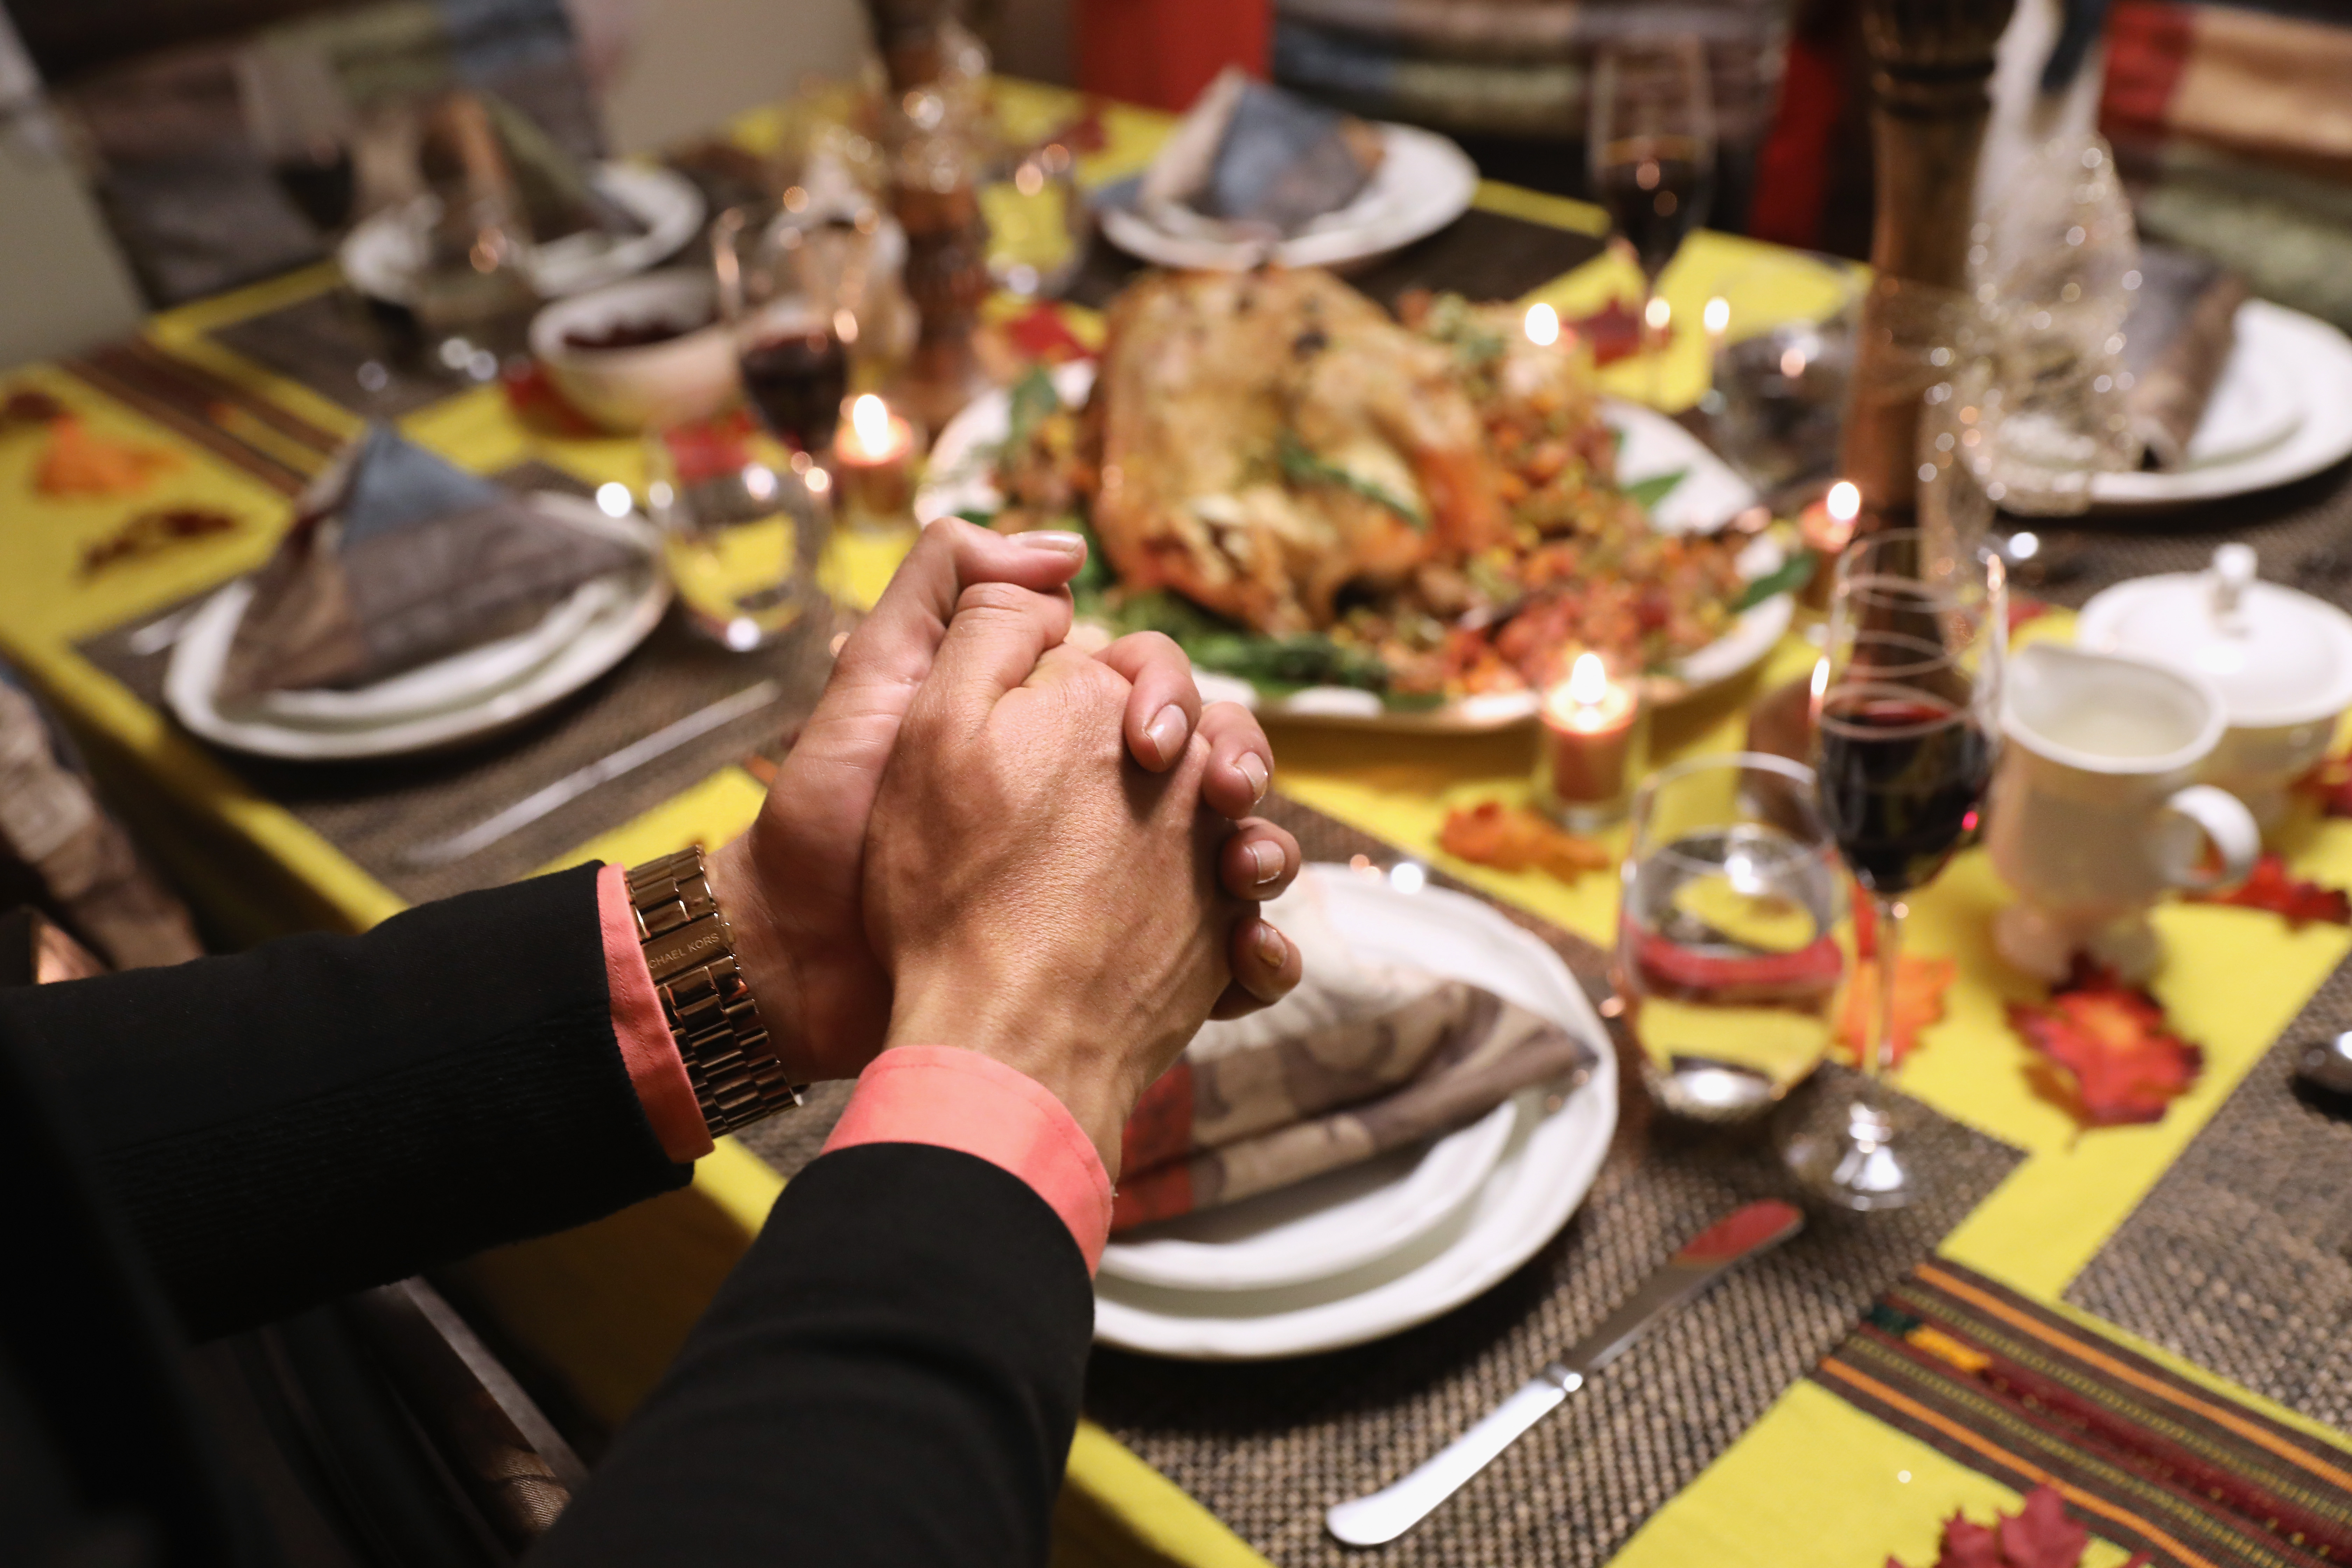 A person sits at a Thanksgiving table with their hands clasped in front of them.